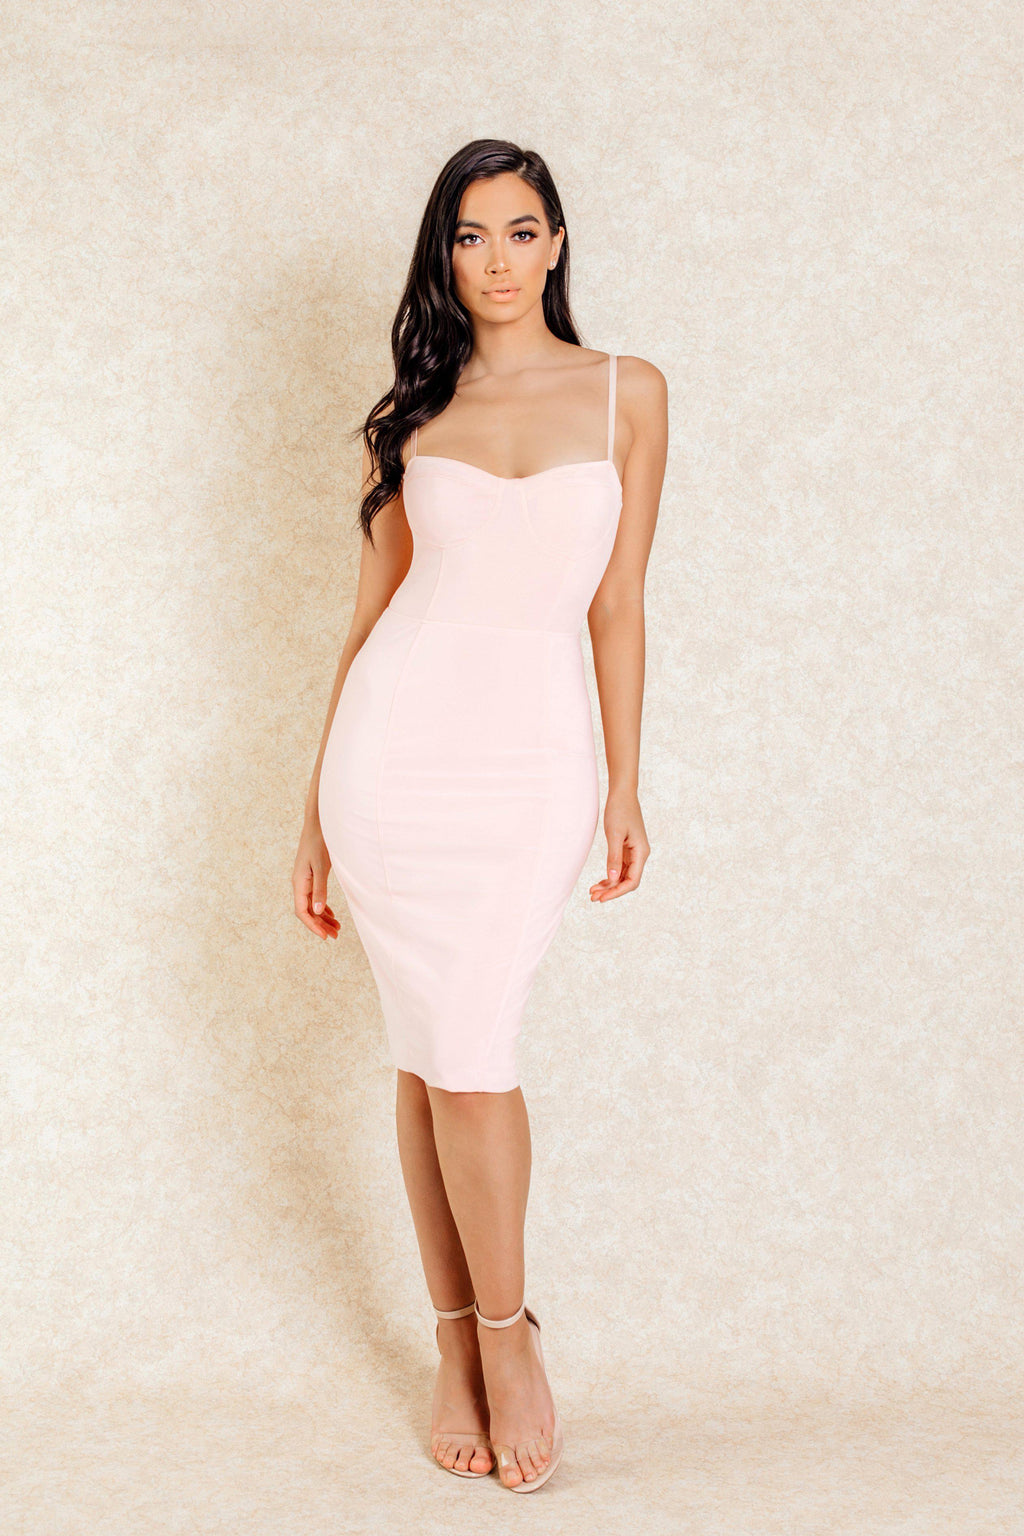 Anoushka Pink Ribbed Midi Dress - Klasha